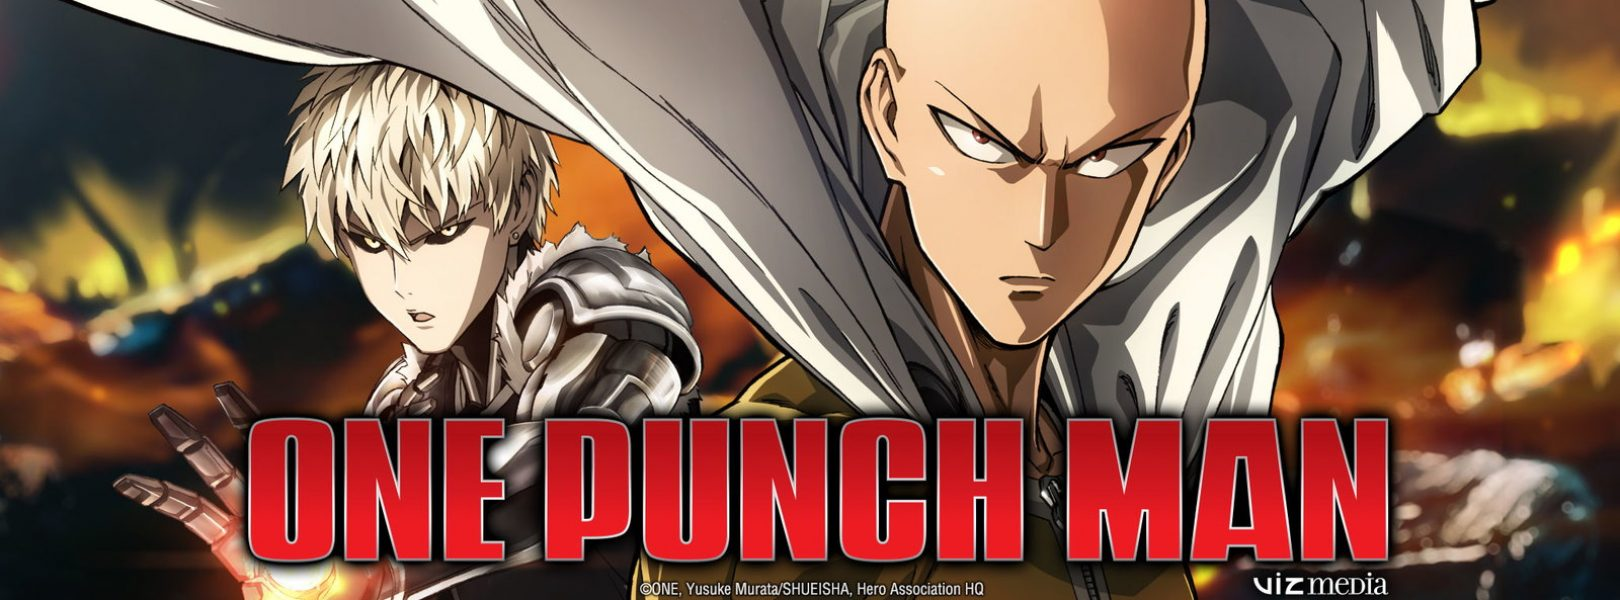 ONE-PUNCH MAN Coming to Adult Swim